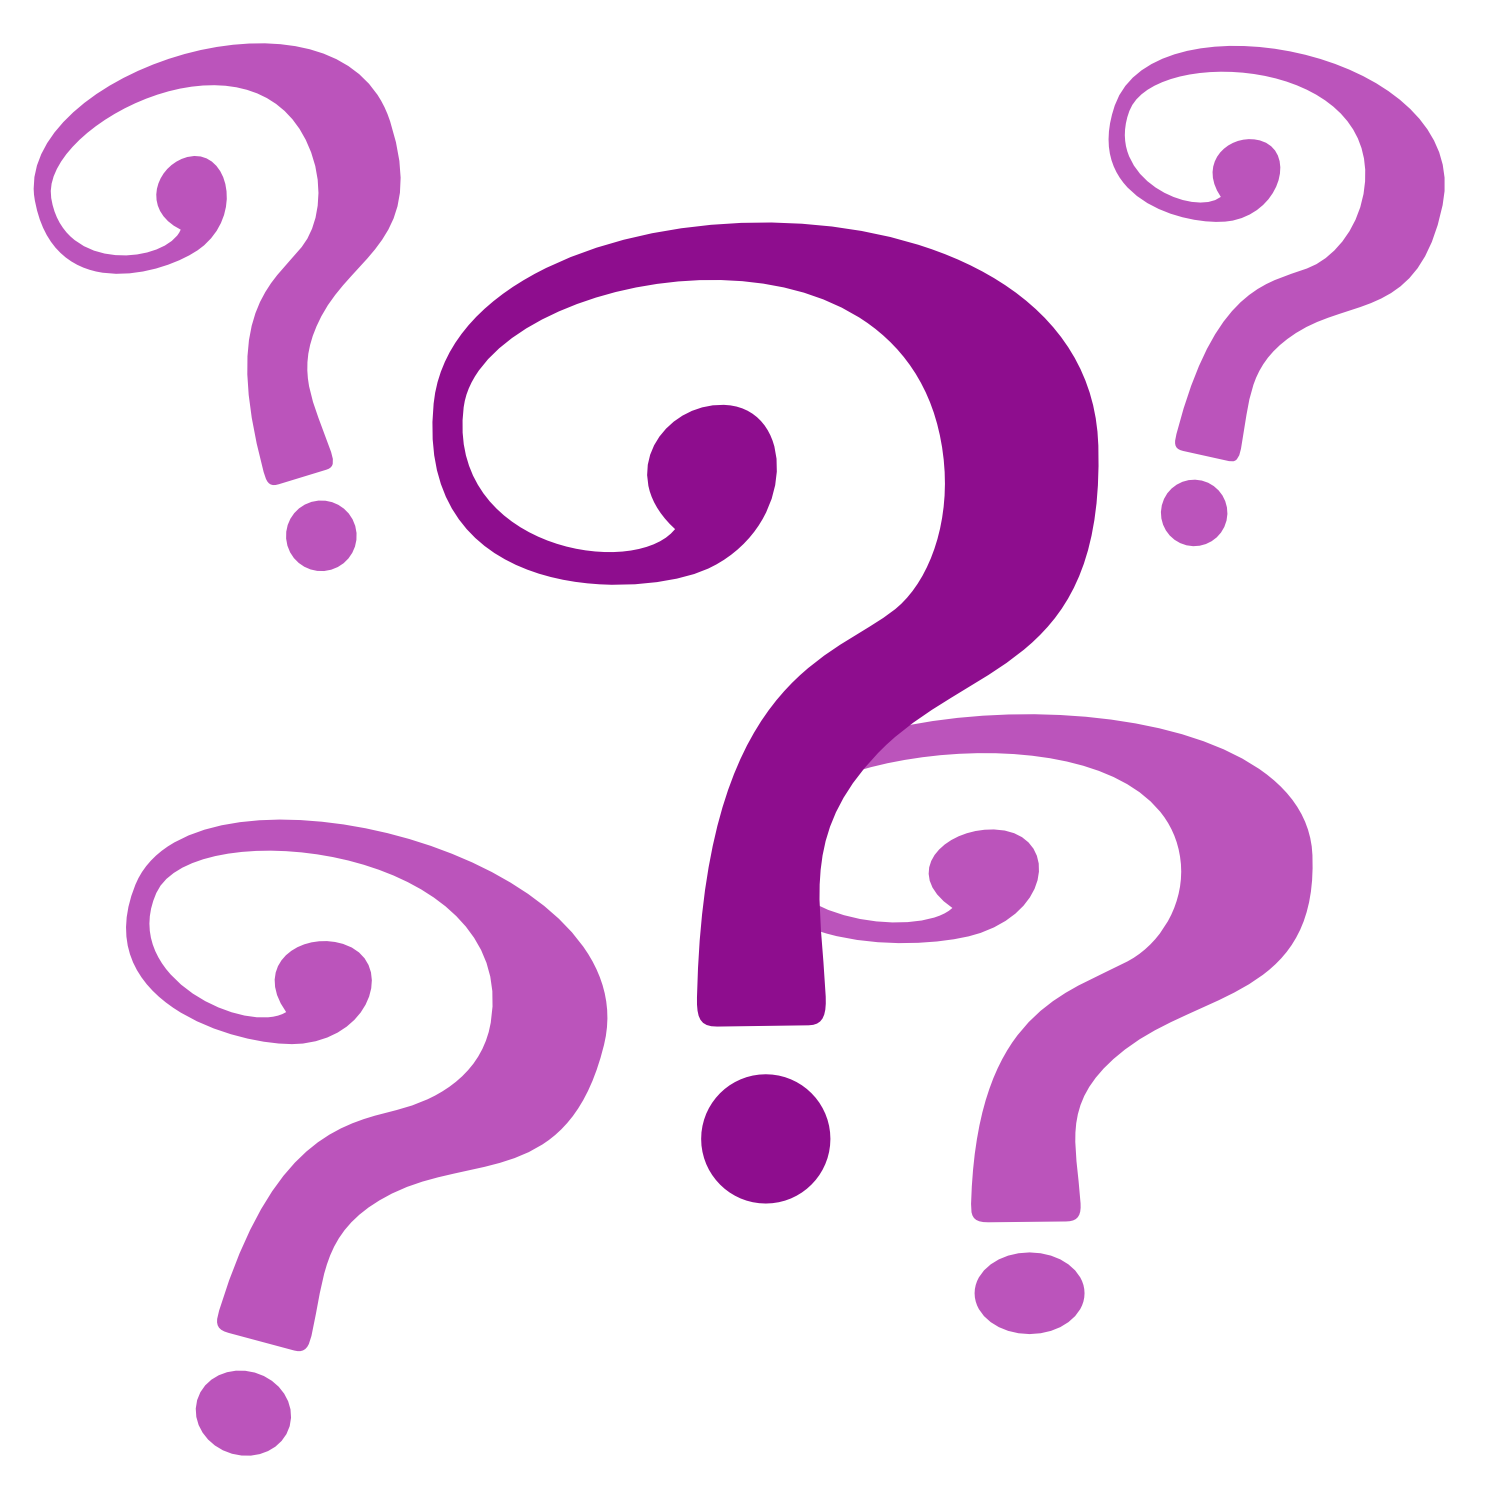 Marks clipart cluster. Frequently asked questions faqs